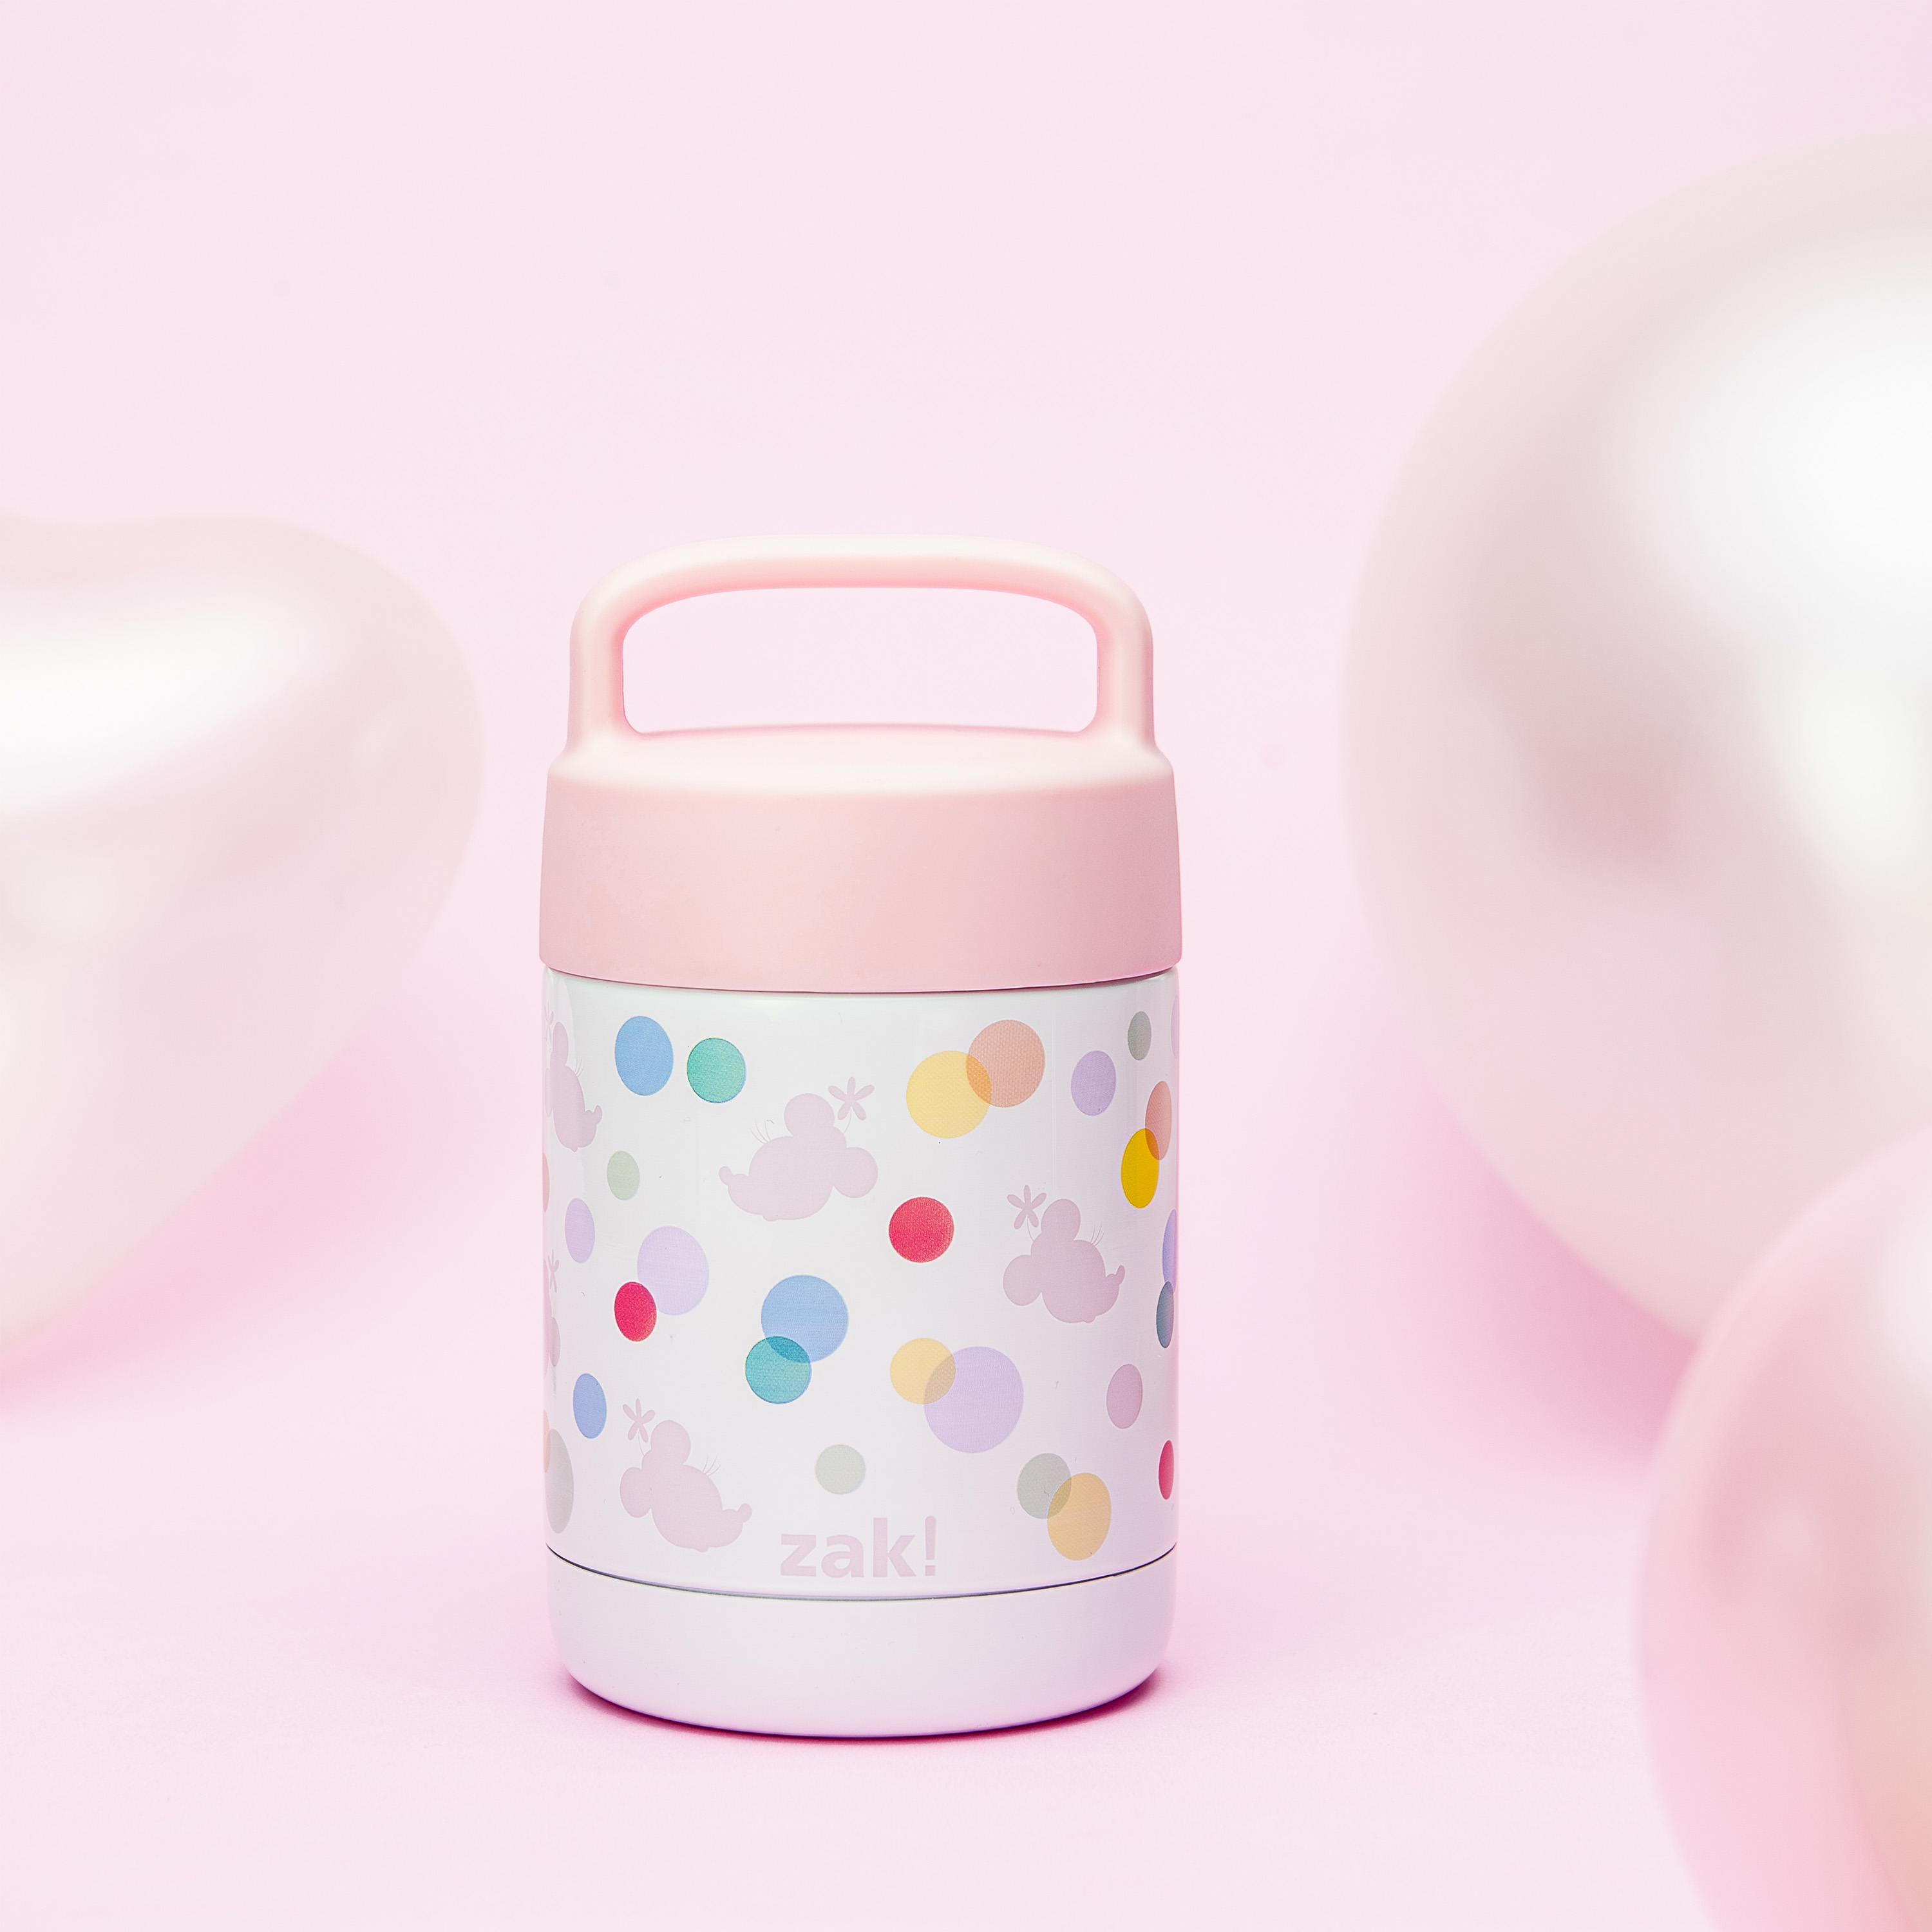 Disney Reusable Vacuum Insulated Stainless Steel Food Container, Minnie Mouse slideshow image 8